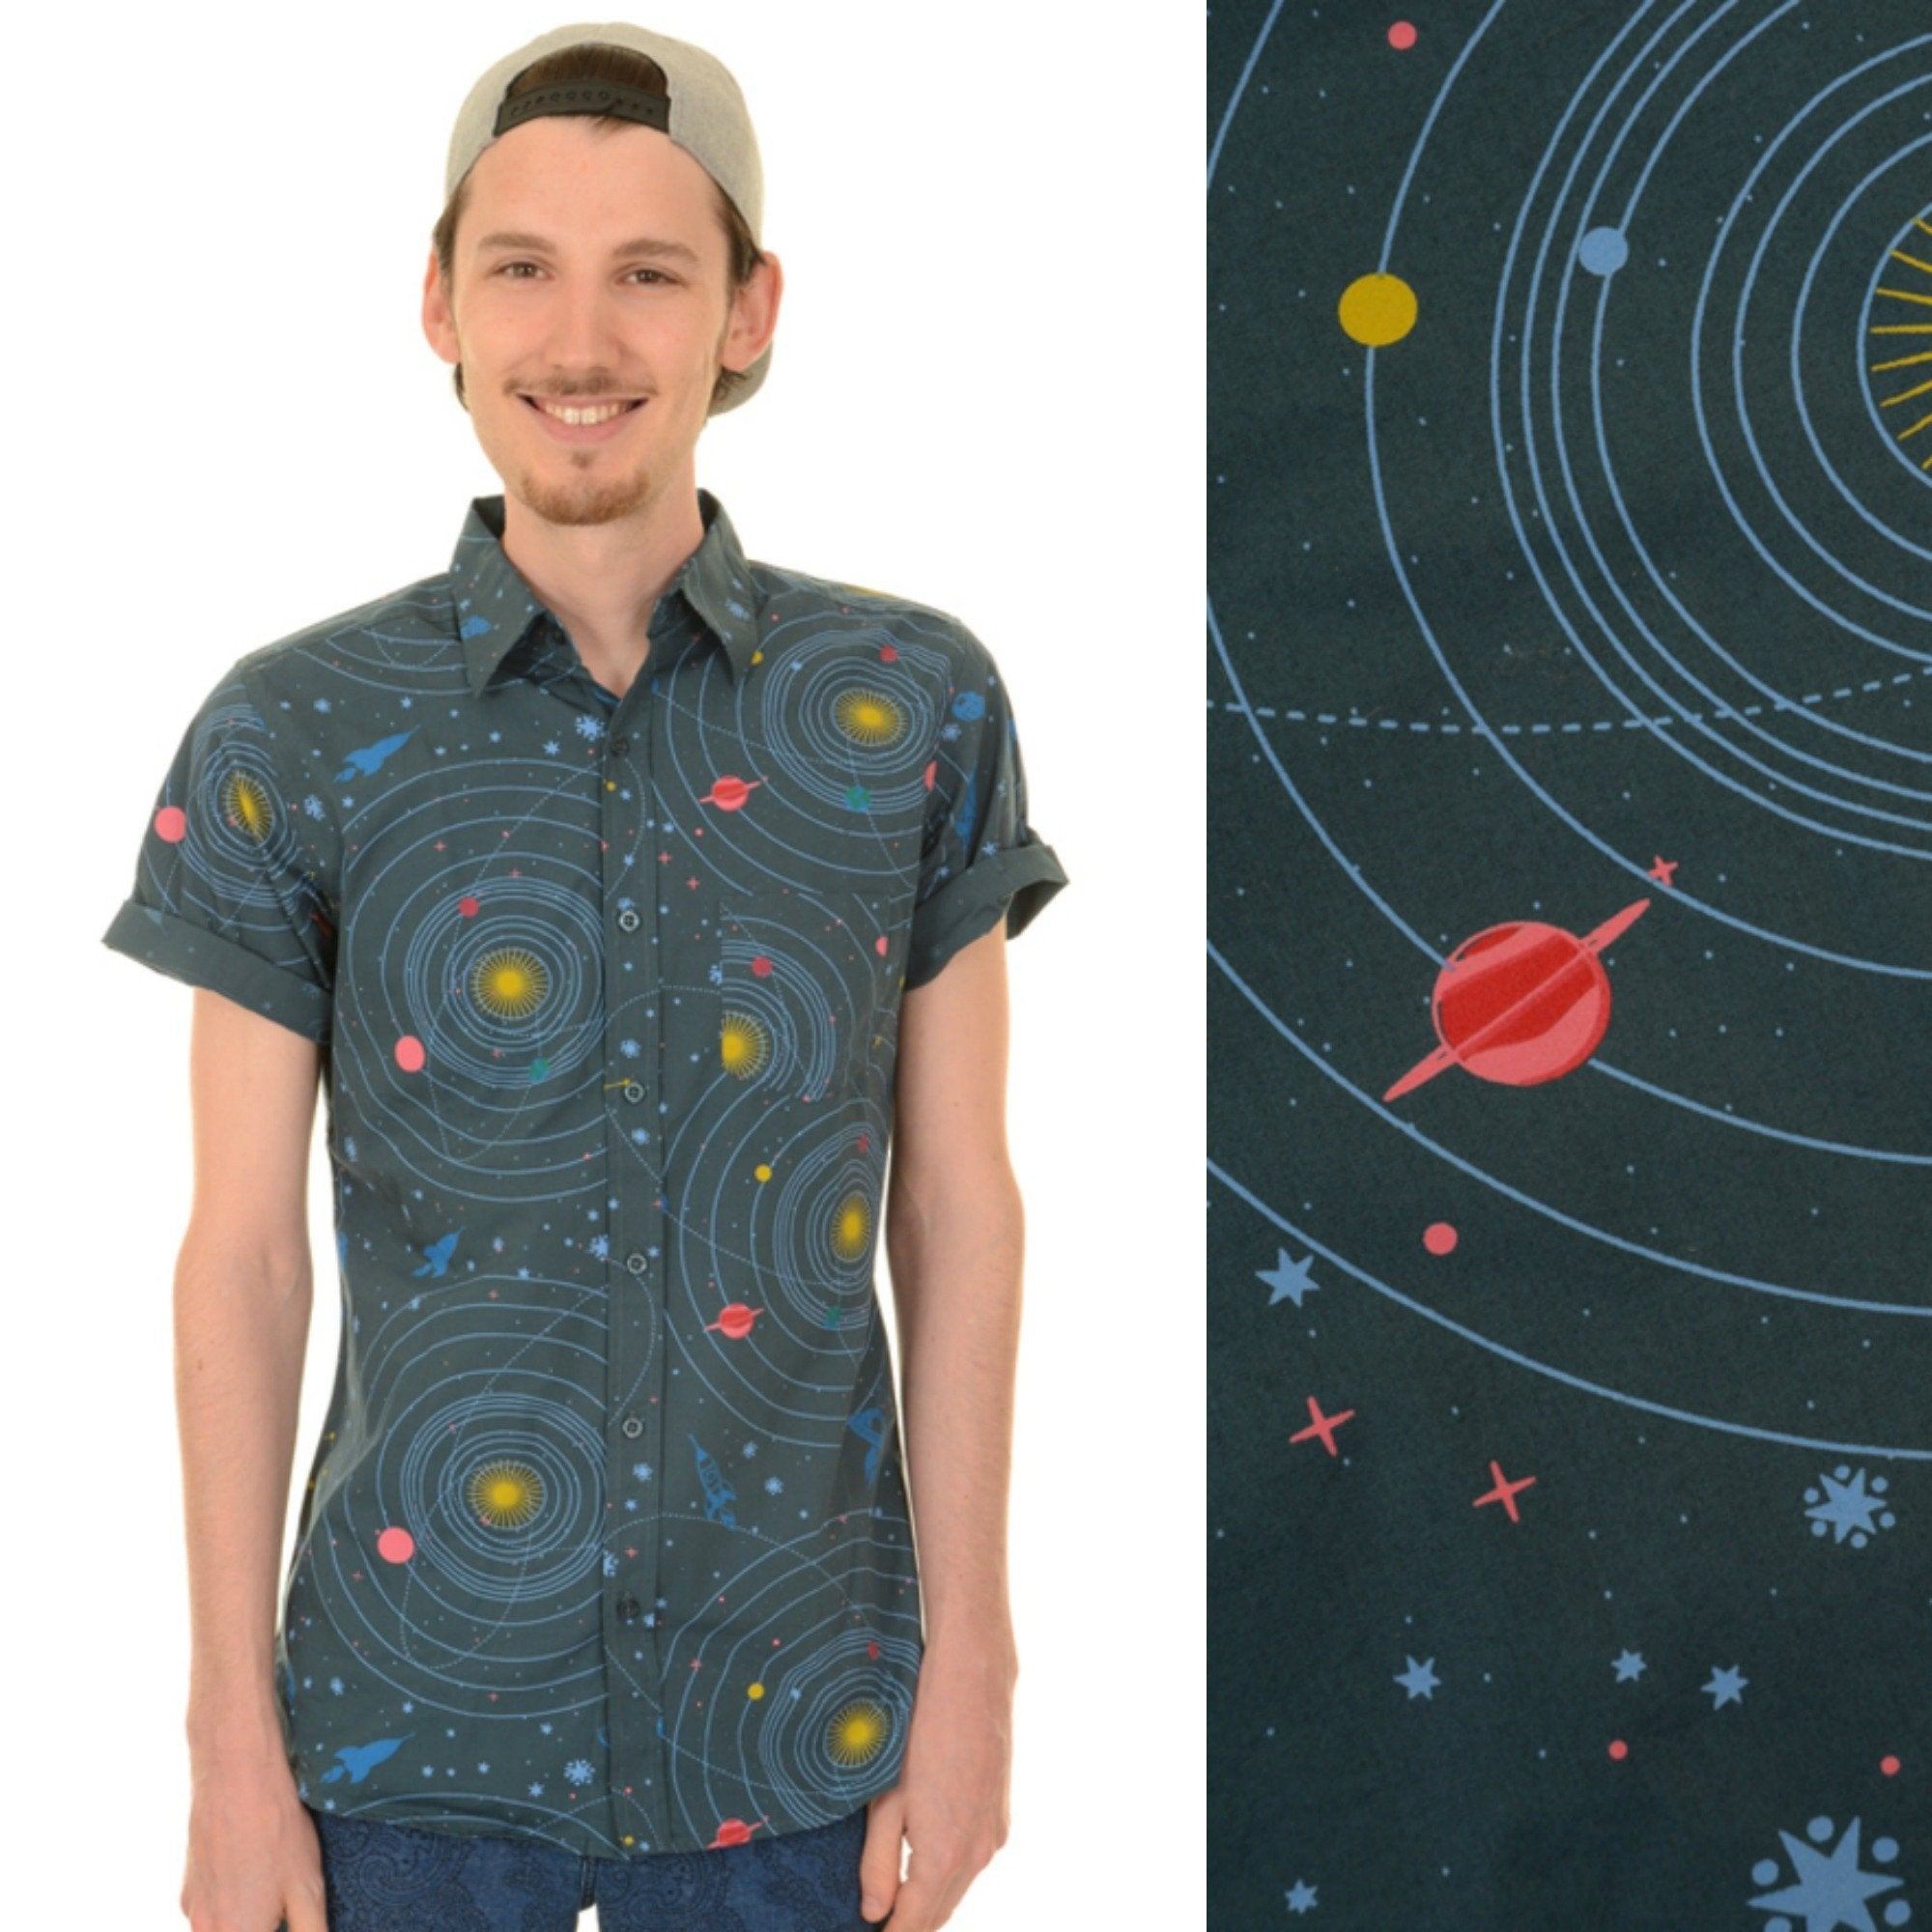 Celestial Solar System Space Print Shirt by Run and Fly - Minimum Mouse